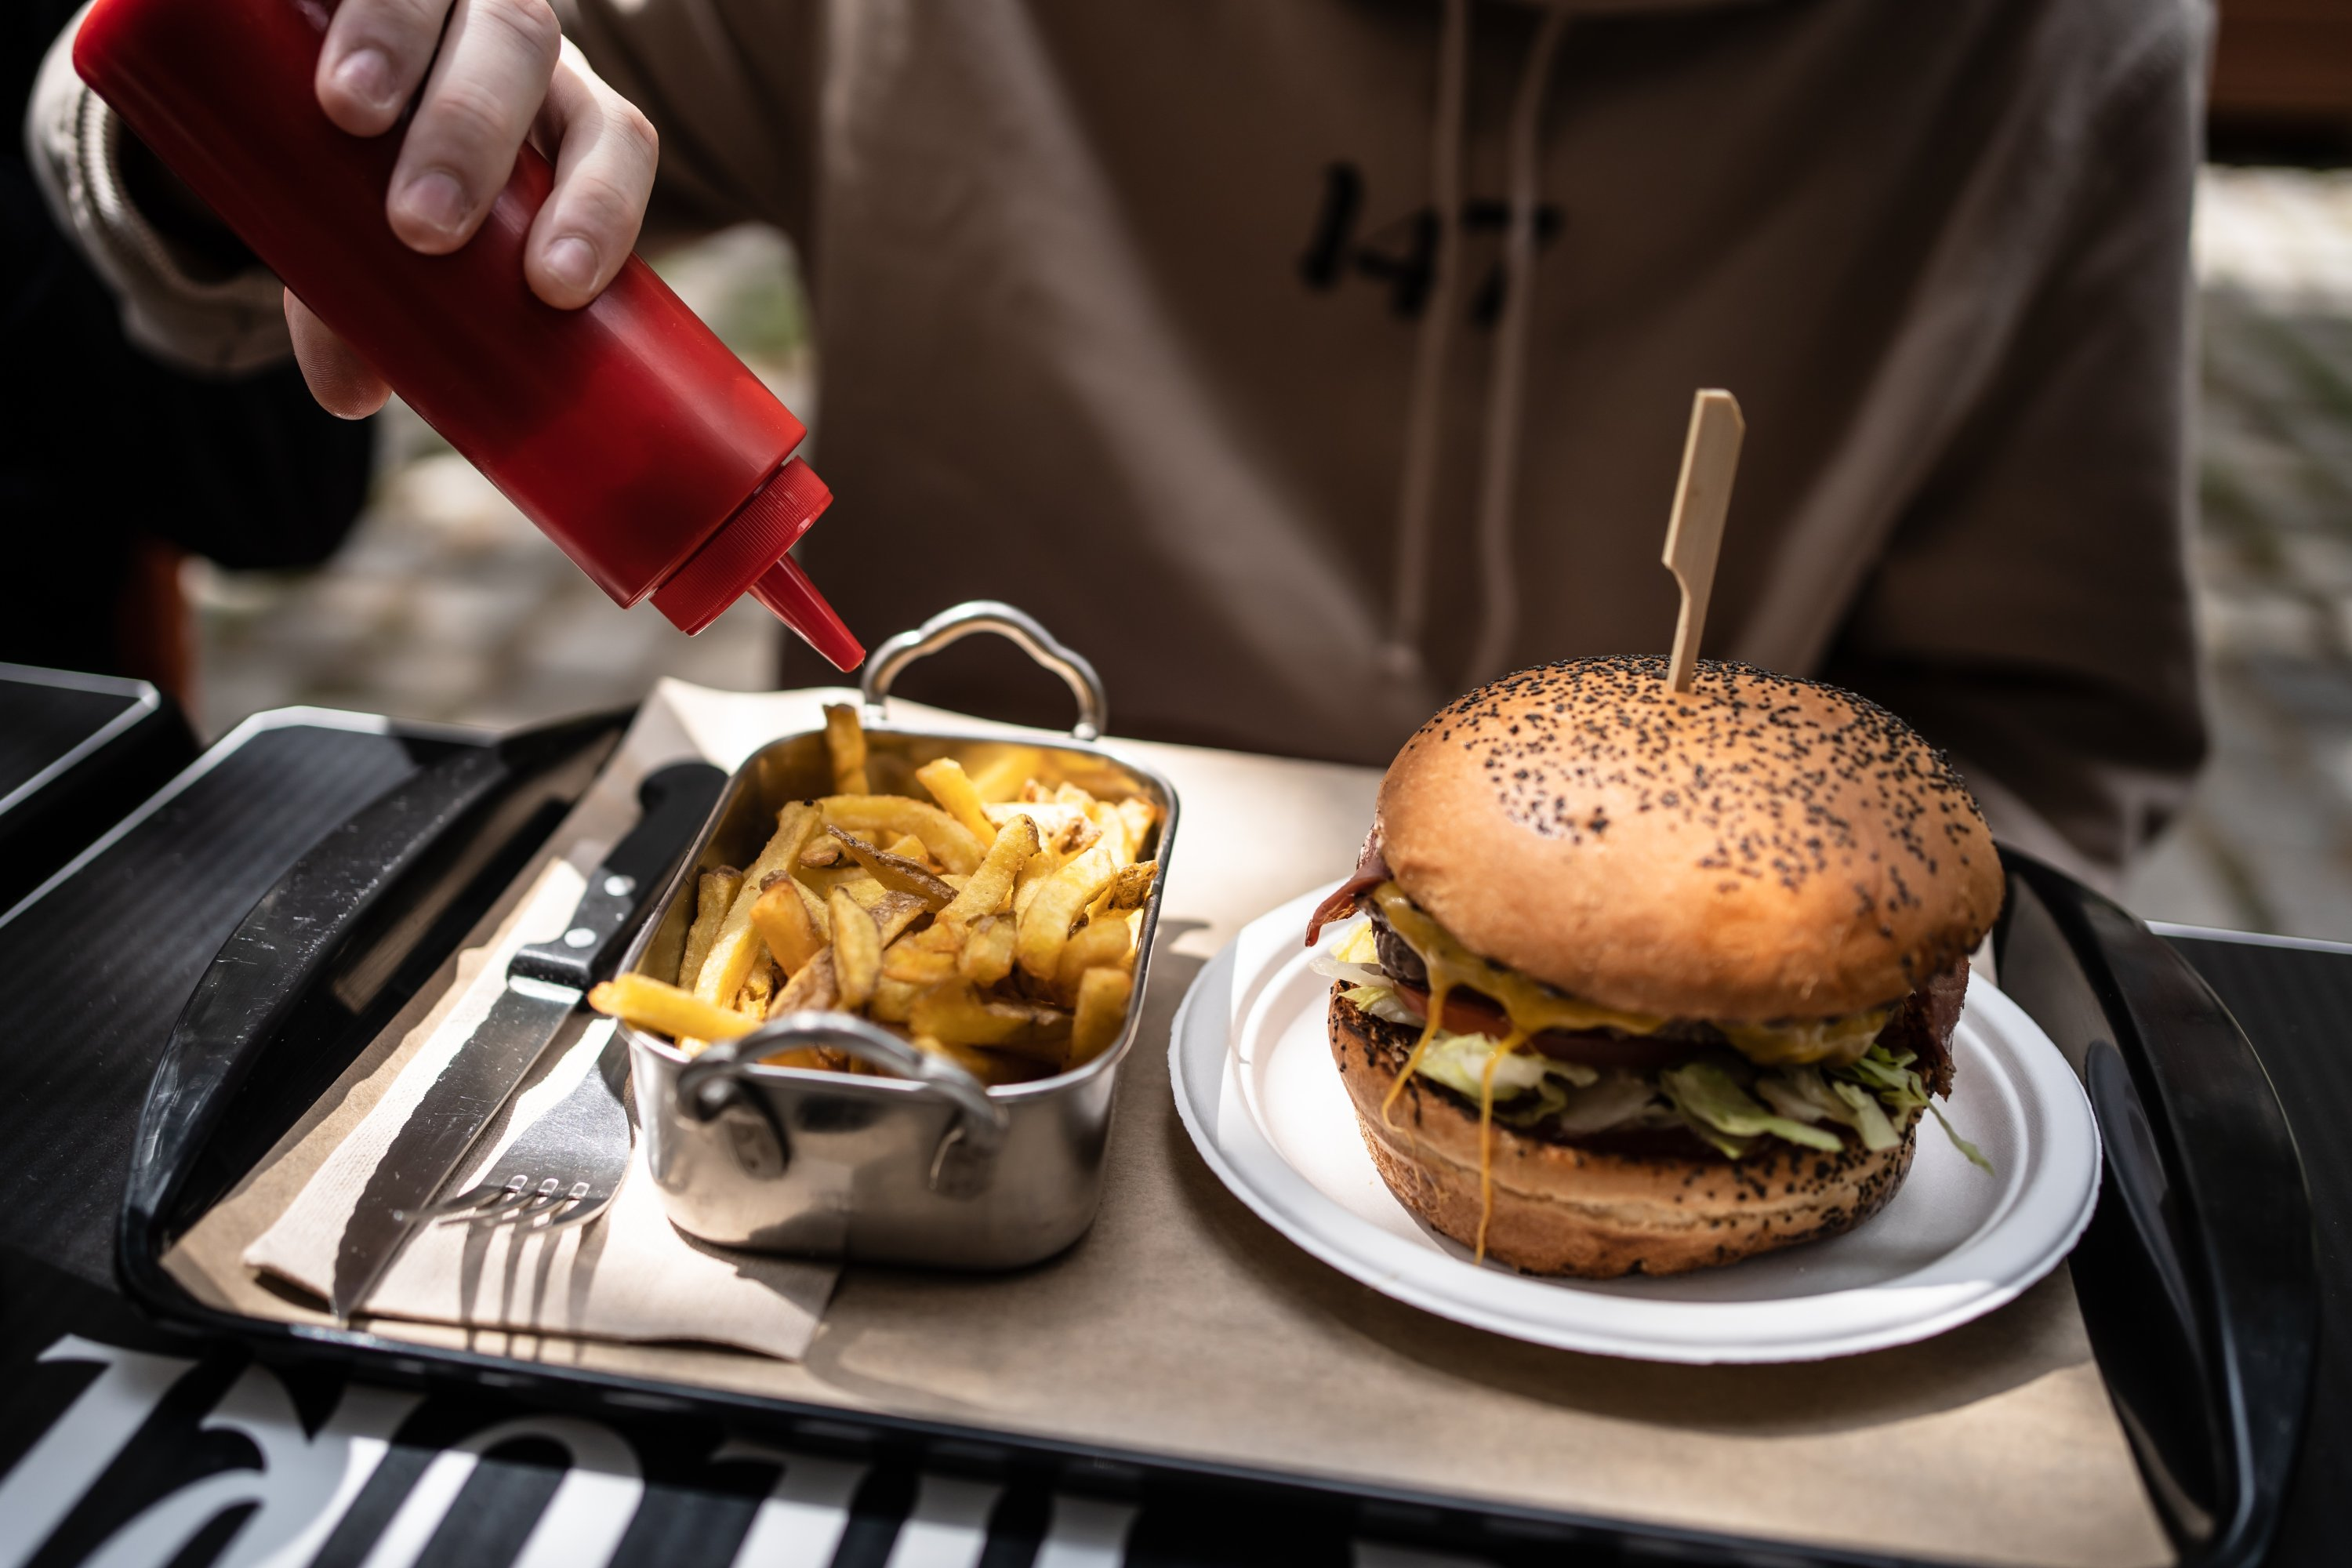 Eating fast food such as burgers and fries often is detrimental to our skin and overall health. (REUTERS Photo)